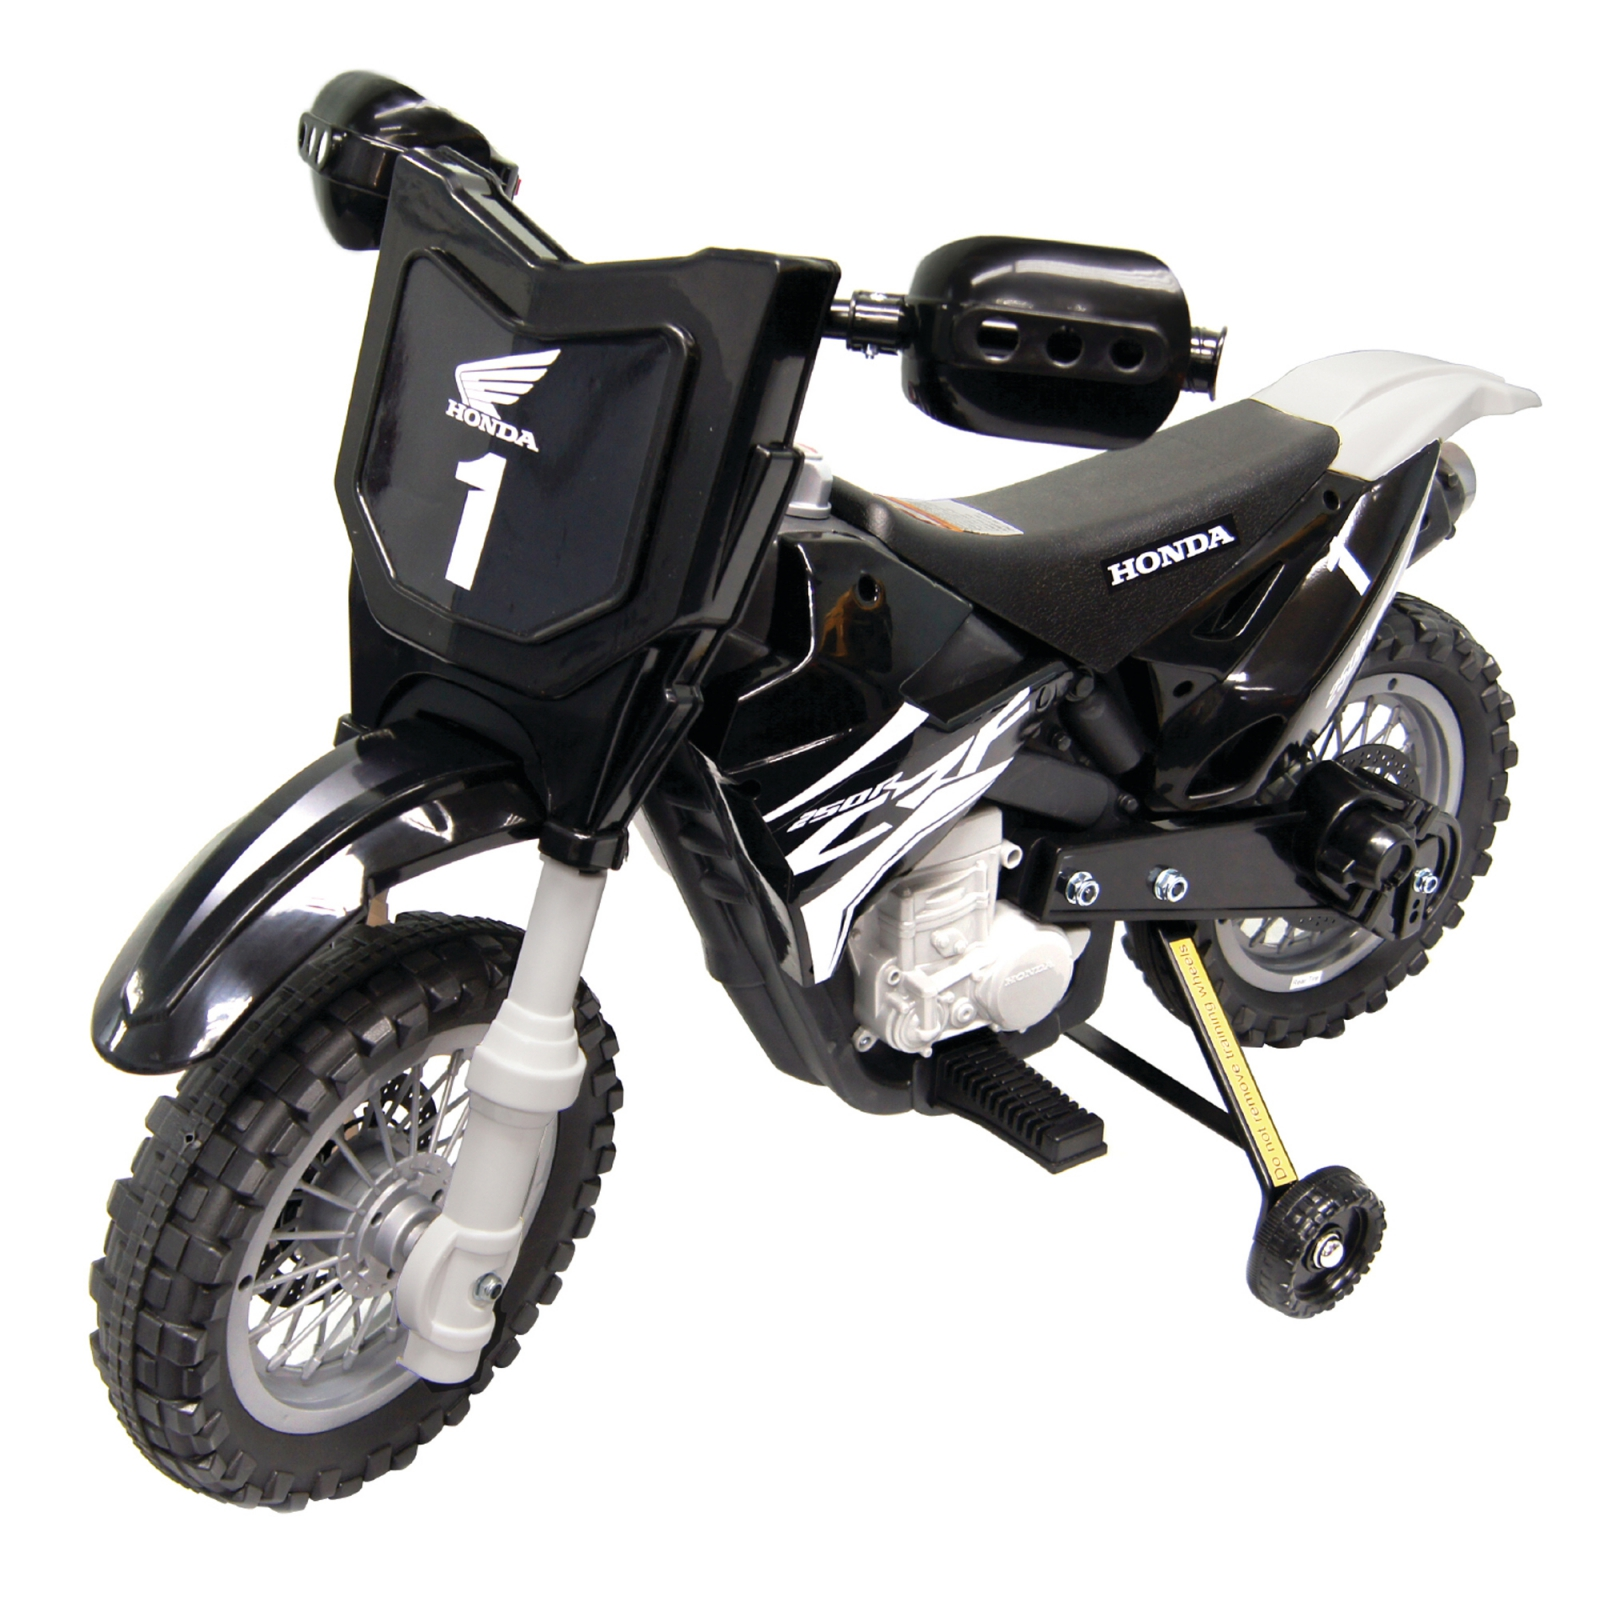 Official Licensed Honda CRF250R 6V Battery Powered Kids Ride On Dirt Bike Black